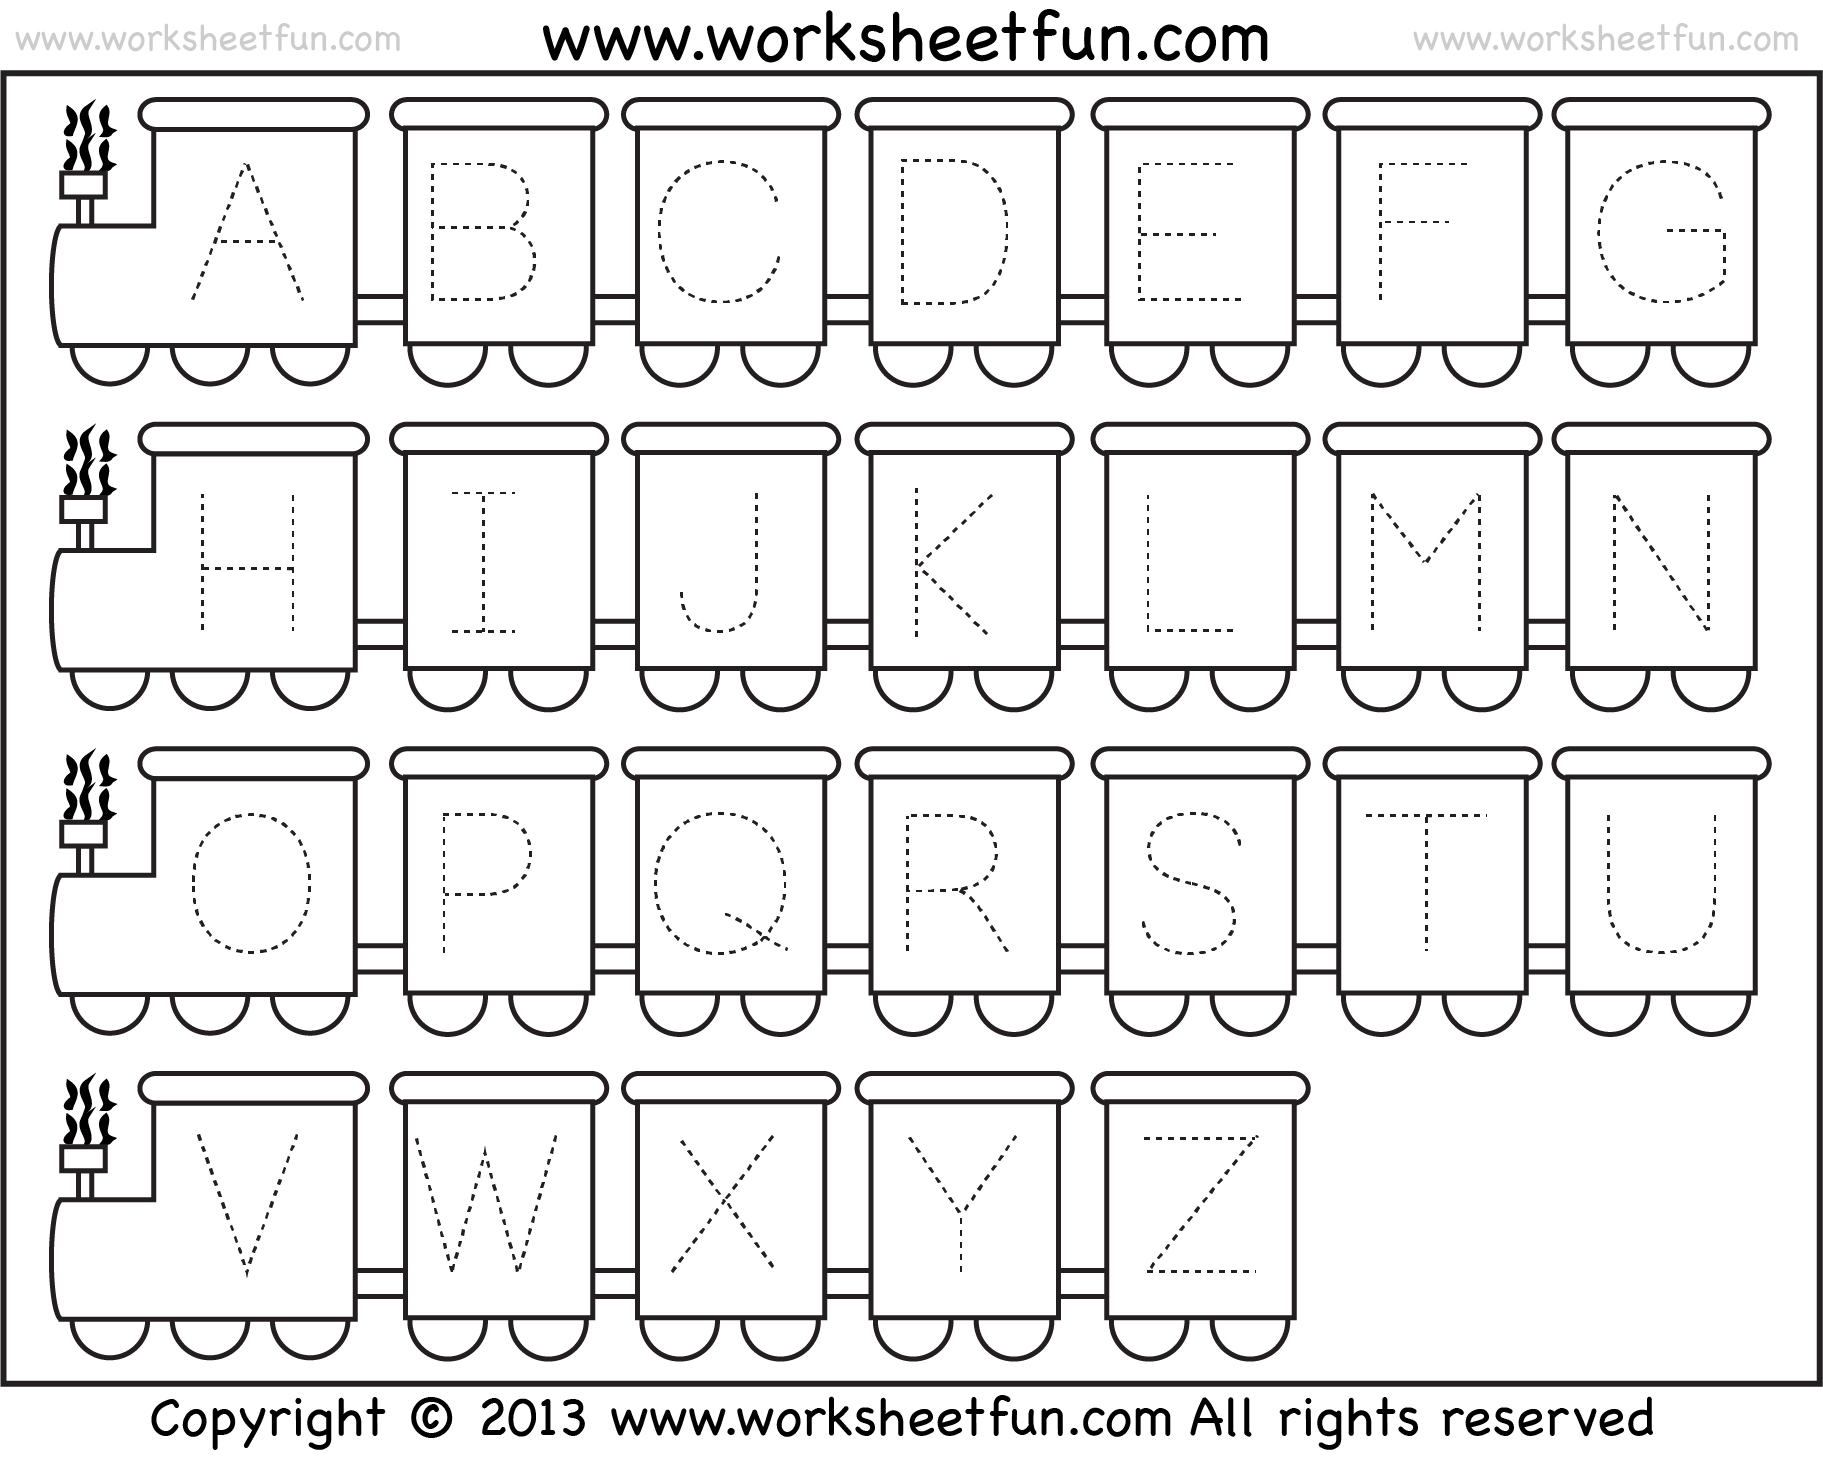 Worksheets Abc Worksheet For Preschool letter tracing worksheet train theme free printable worksheets tracing